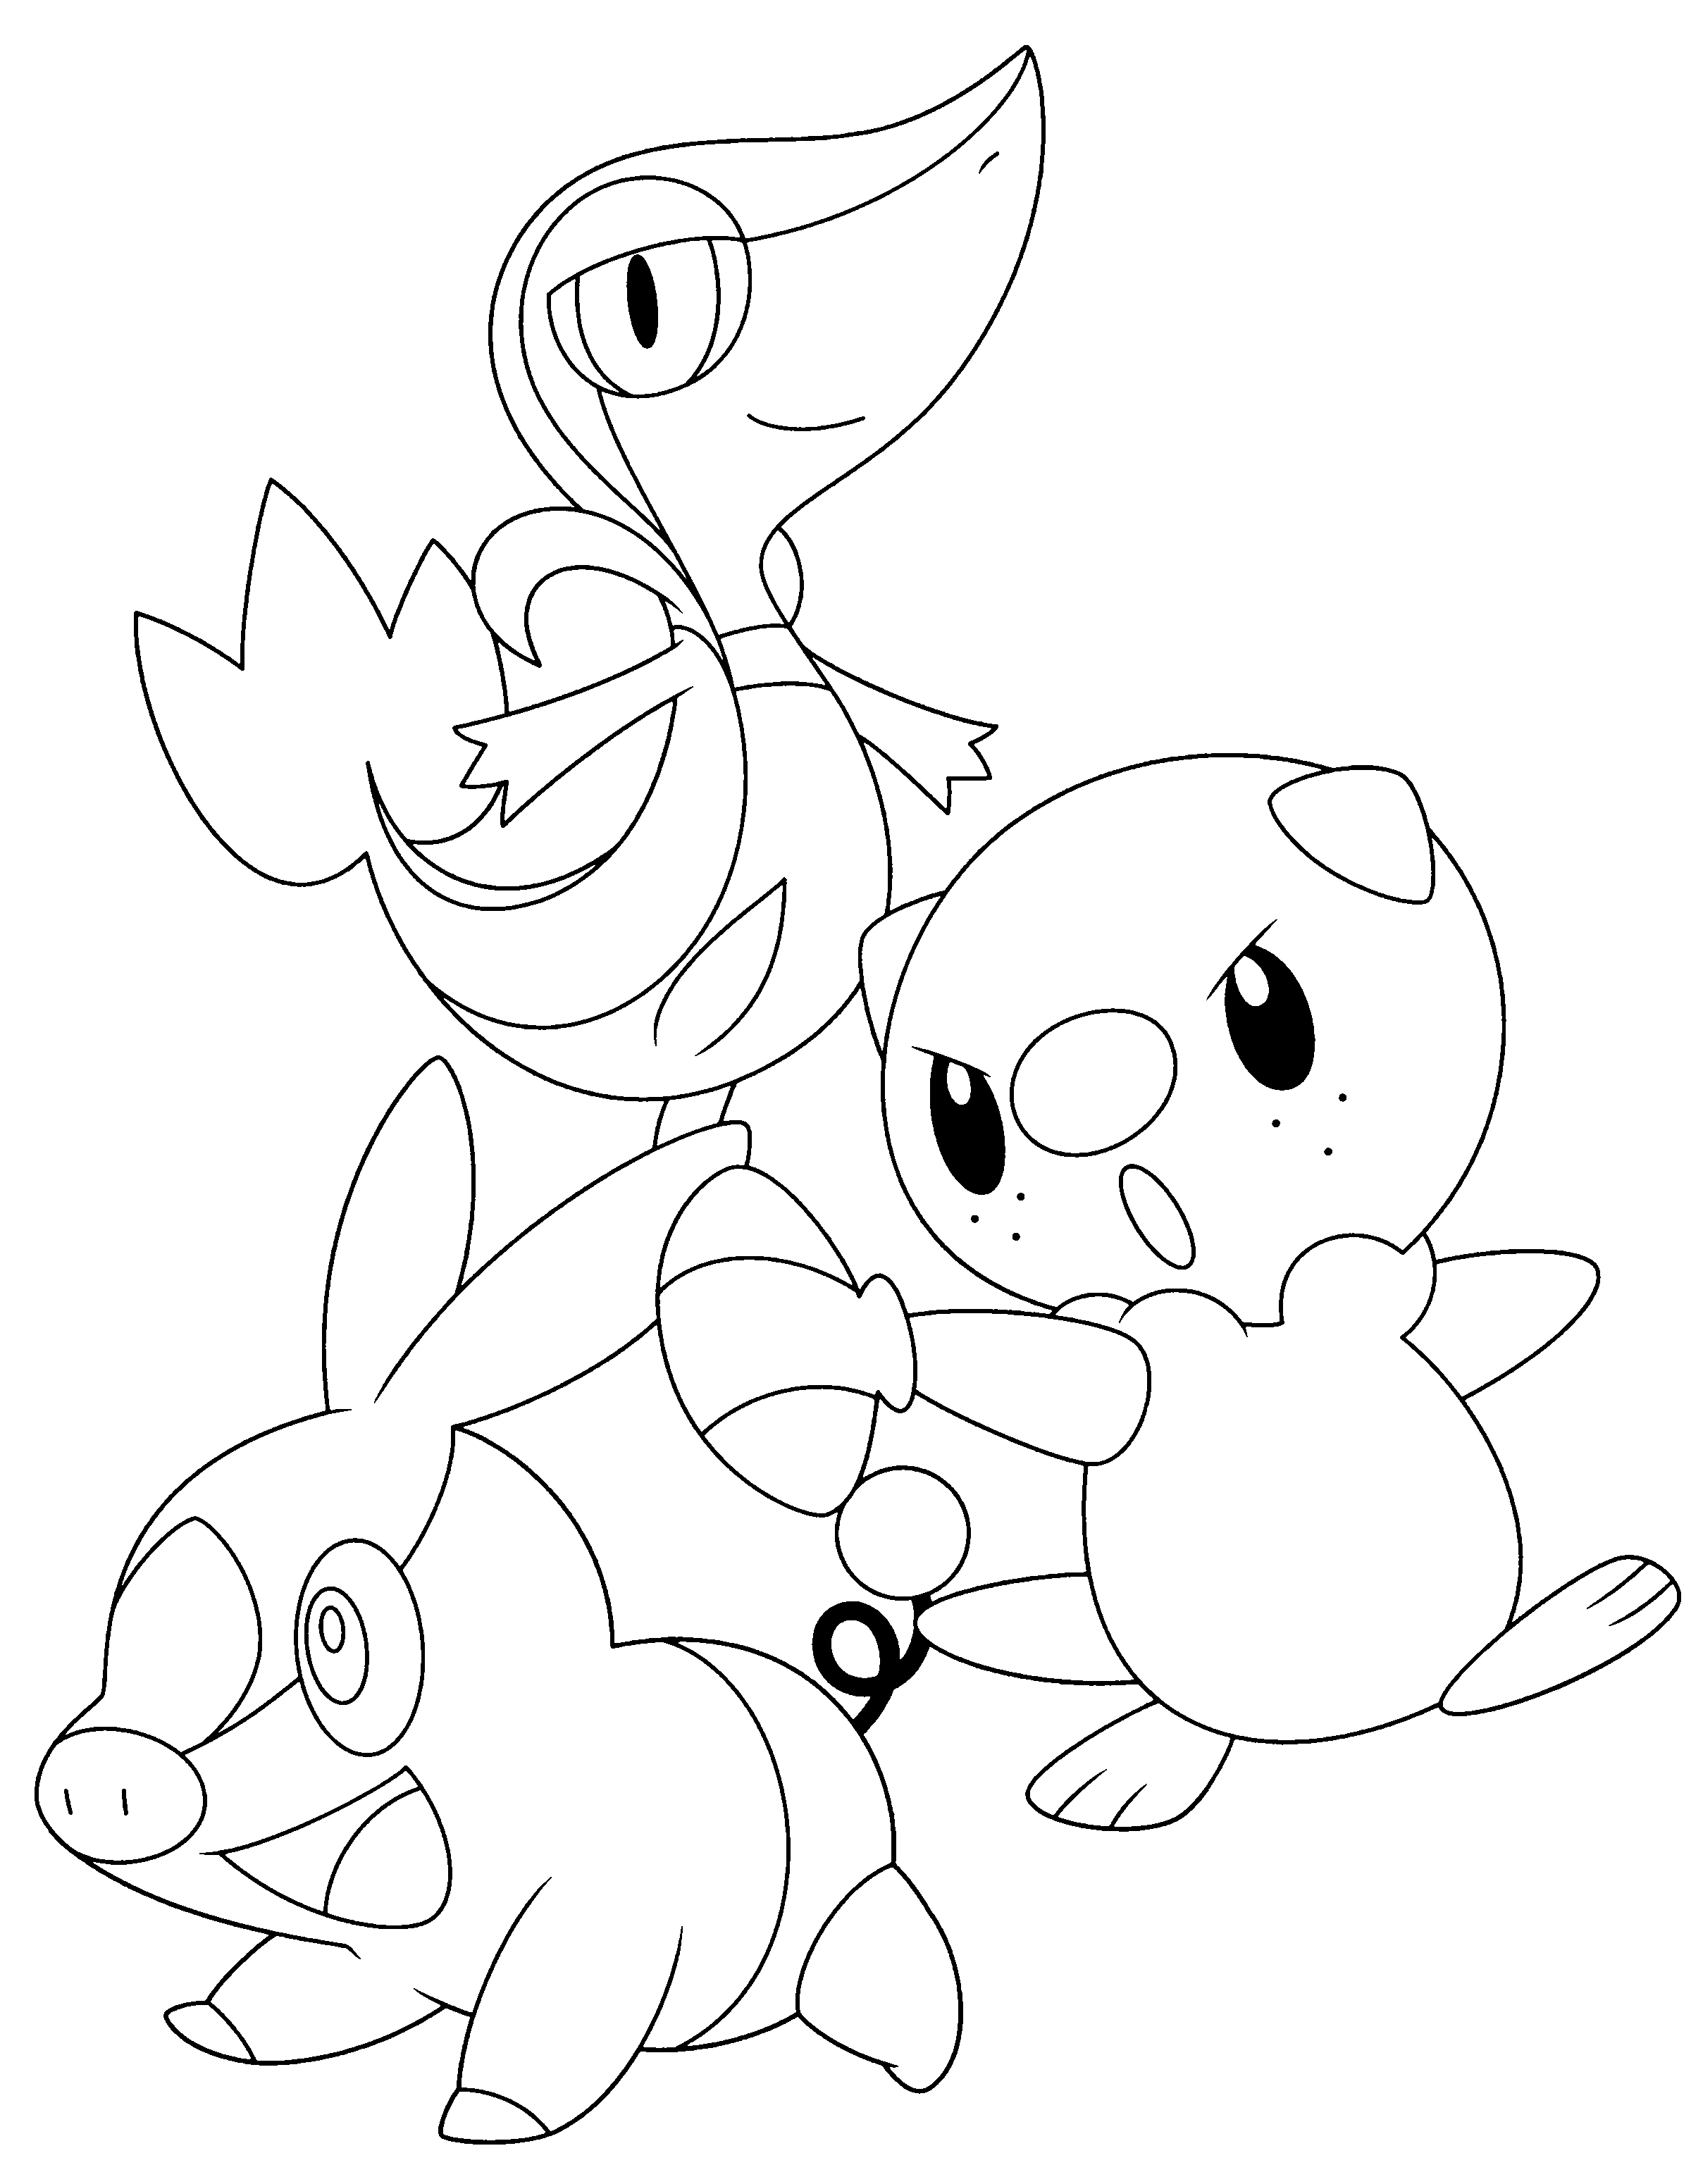 Coloring Pages Pokemon Oshawott Snivy And Tepig Google Search Pokemon Desenhos Colorir